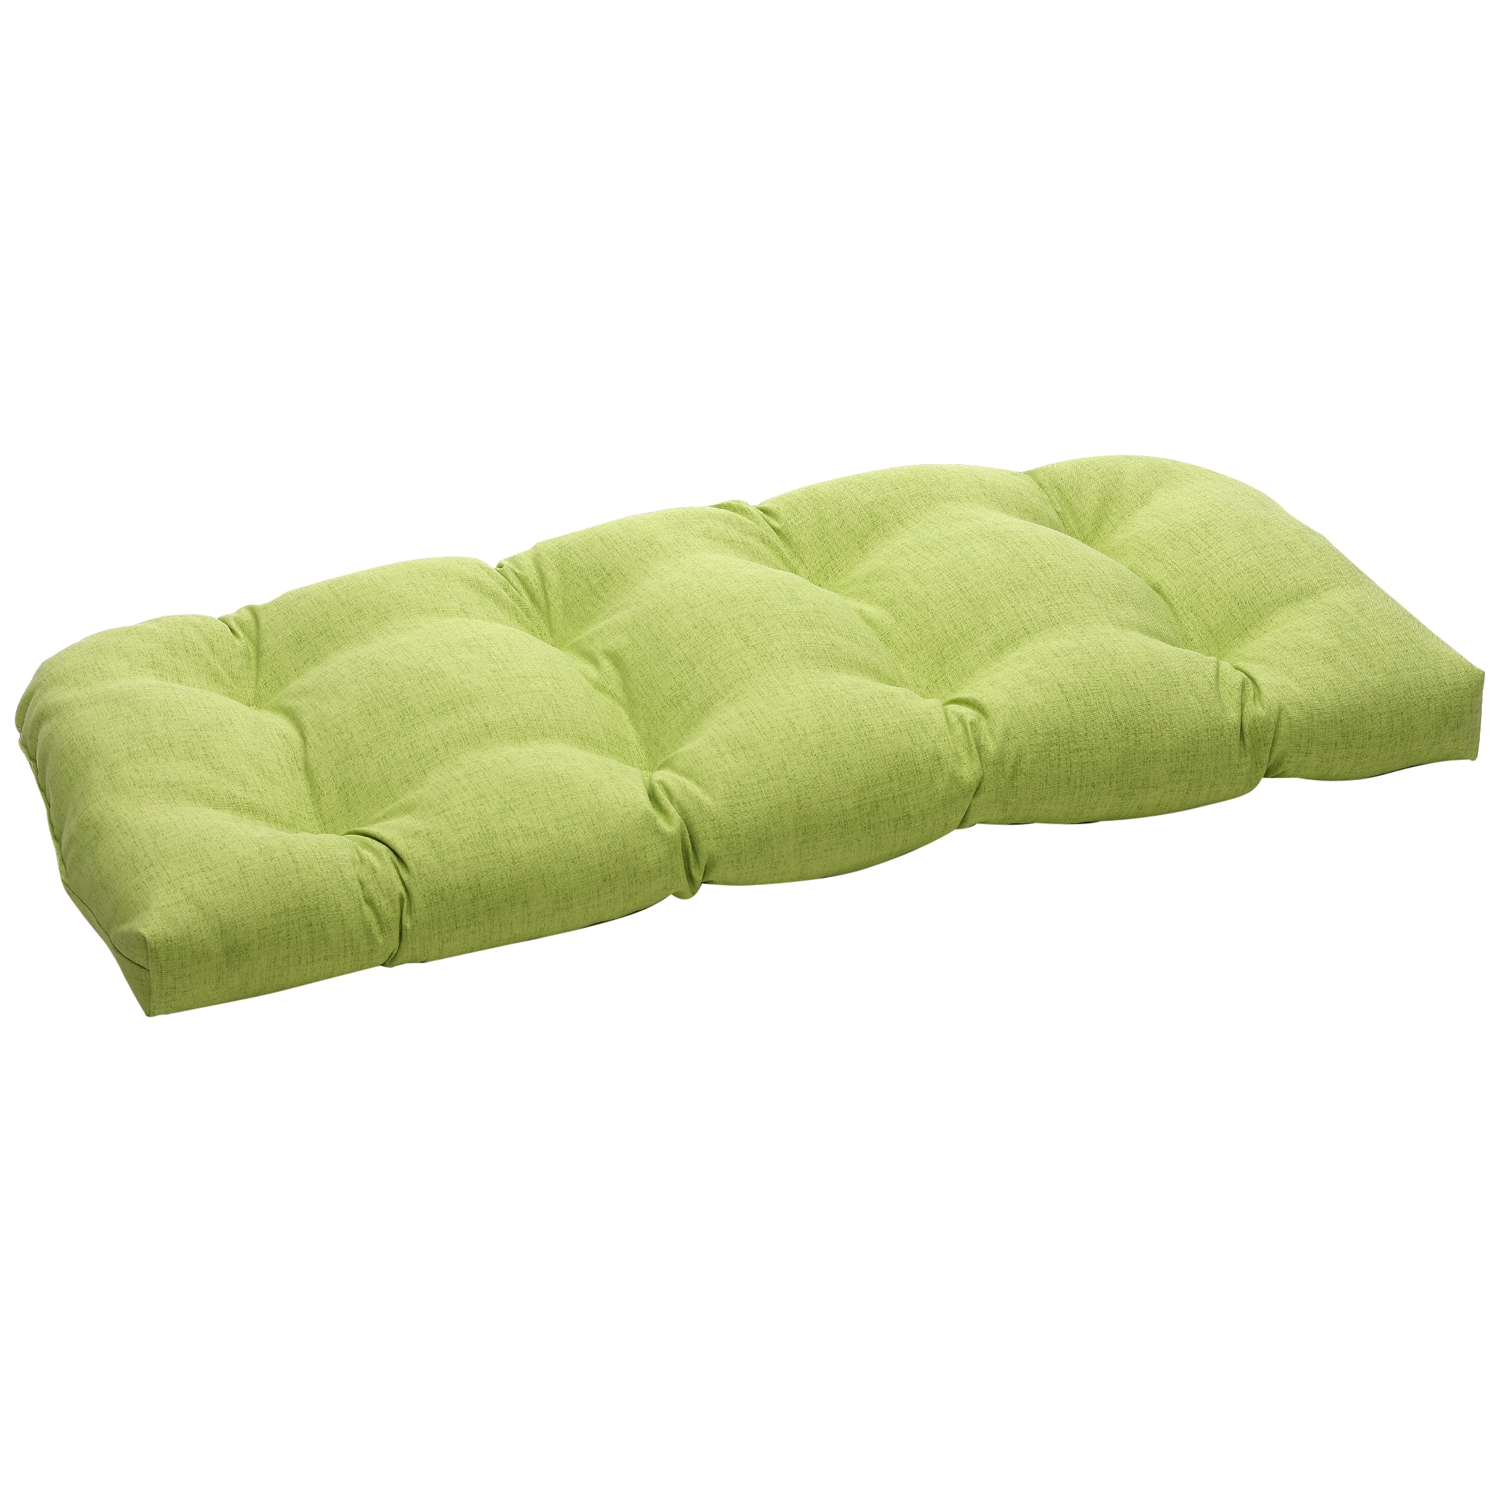 Solid Green Textured Outdoor Wicker Loveseat Cushion